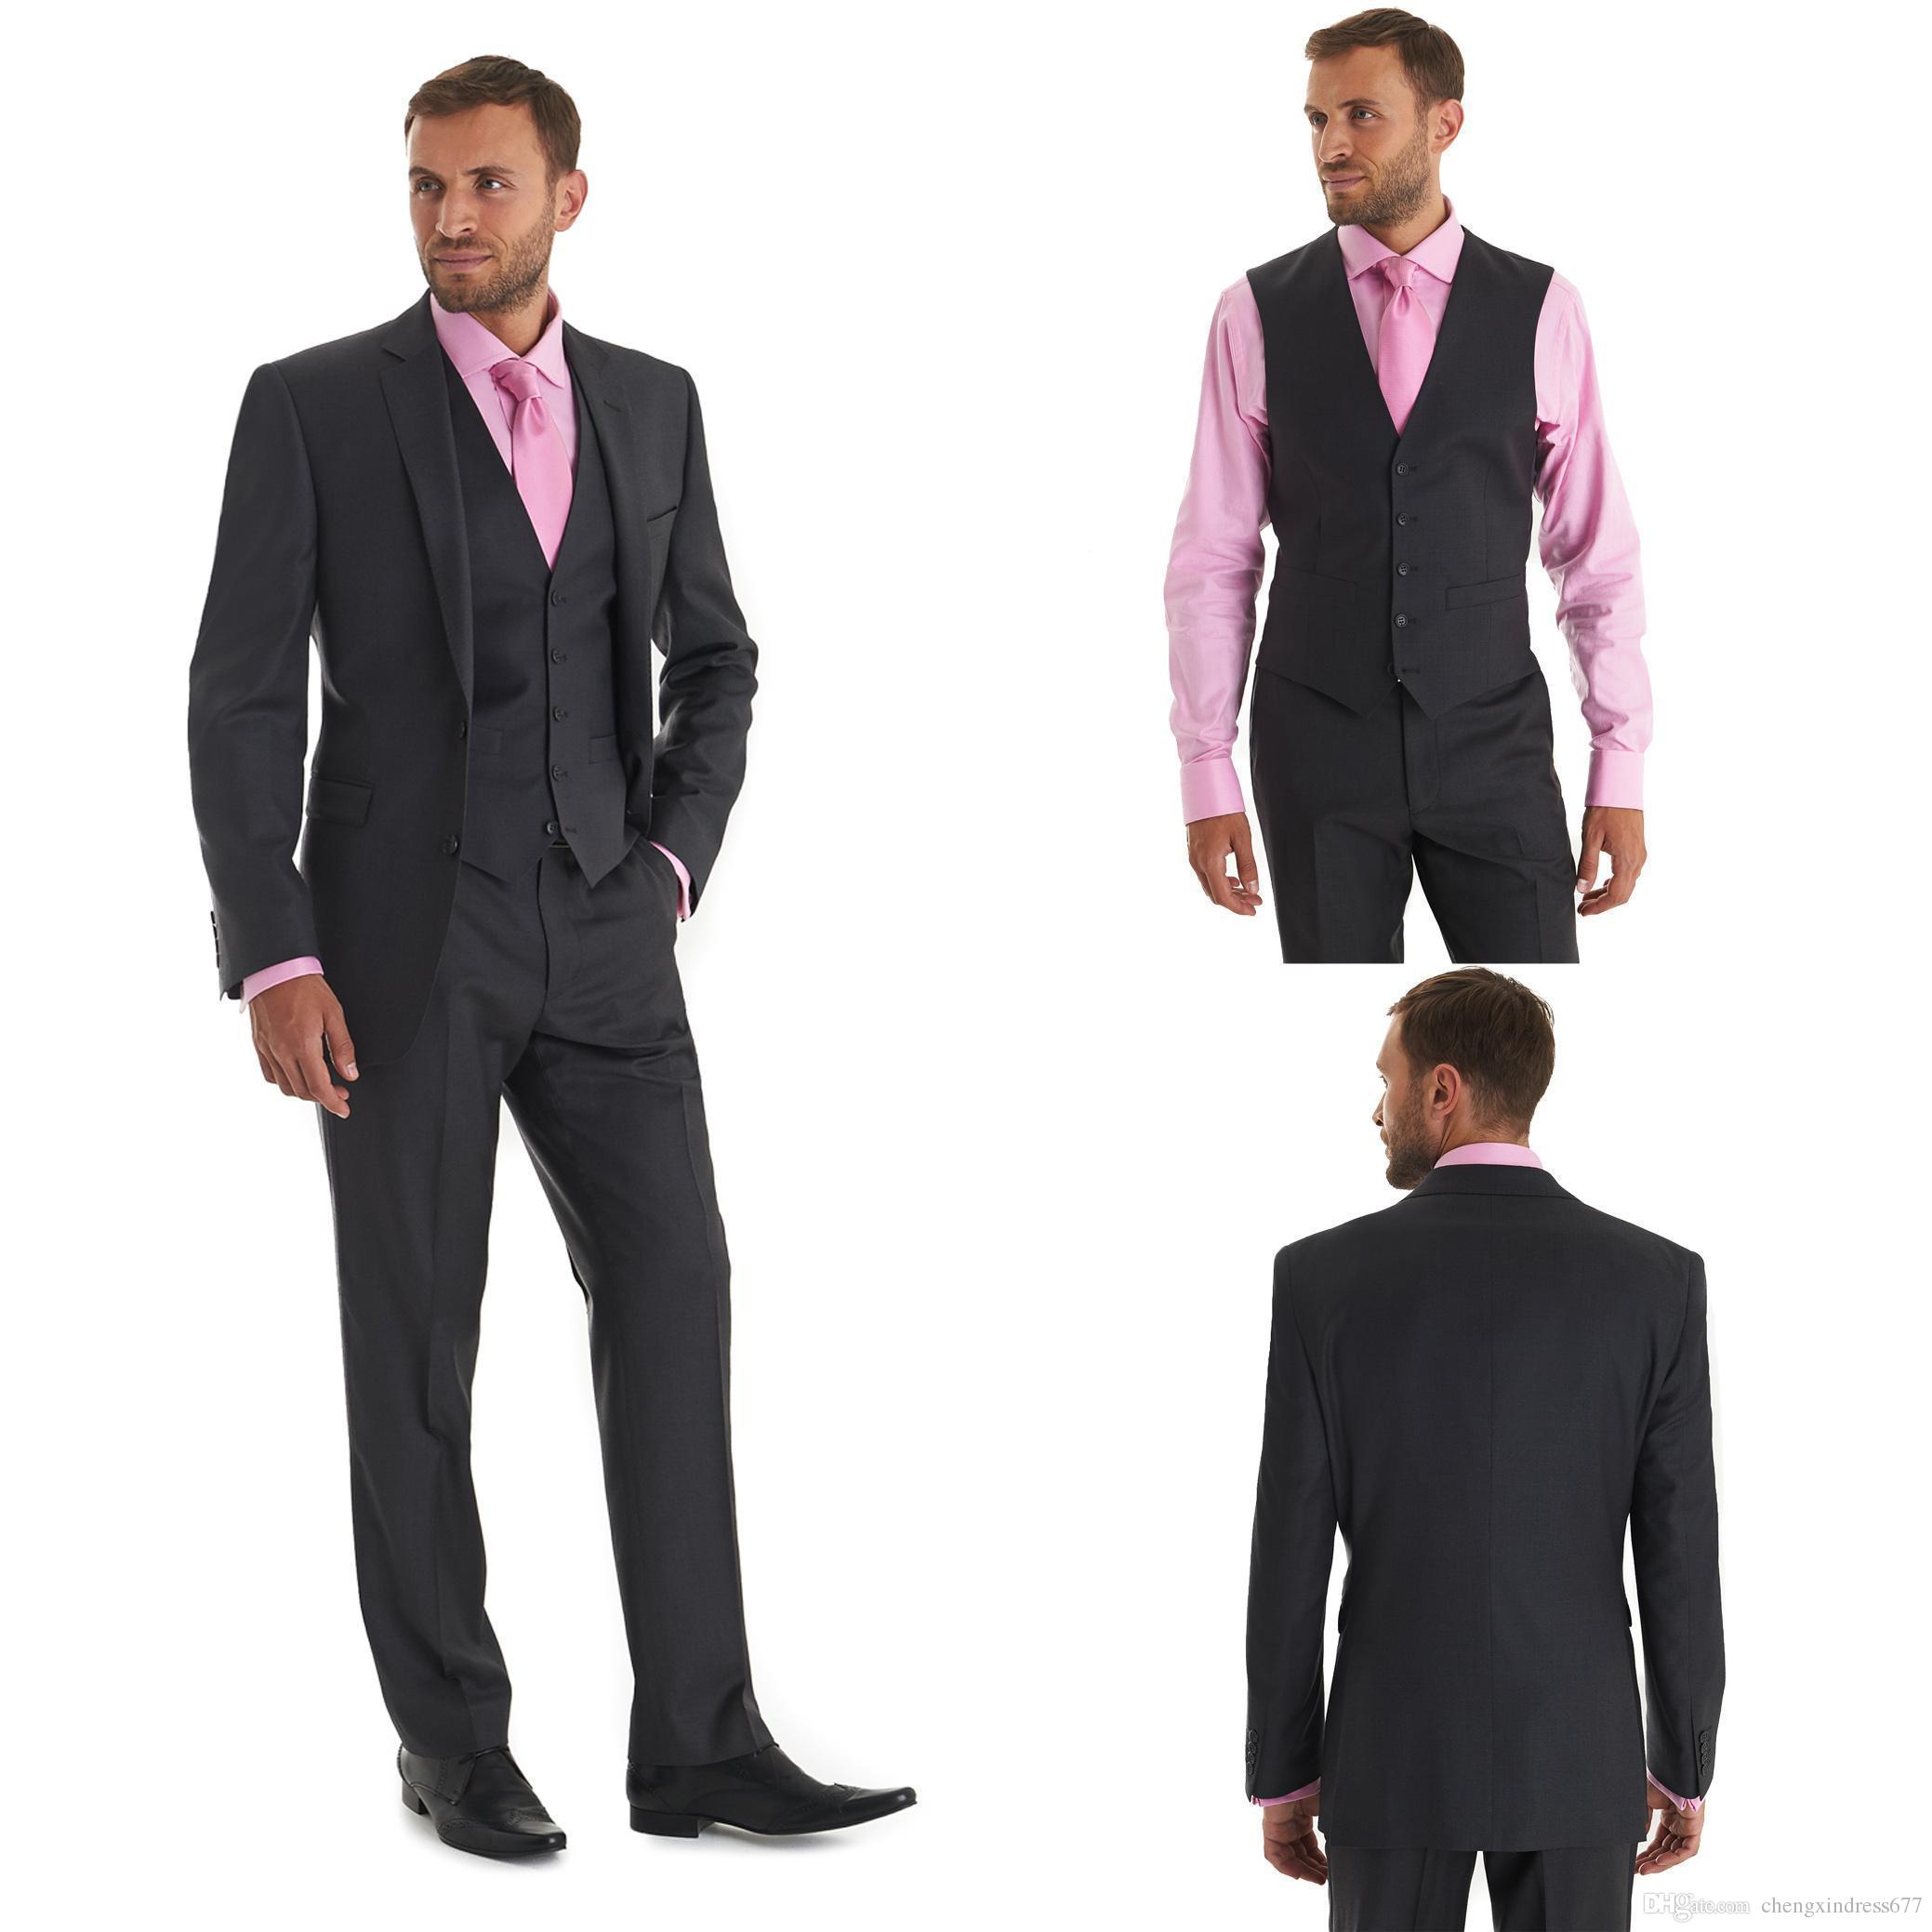 The Latest Formal Dresses For Men Business Suits The Bridegroom